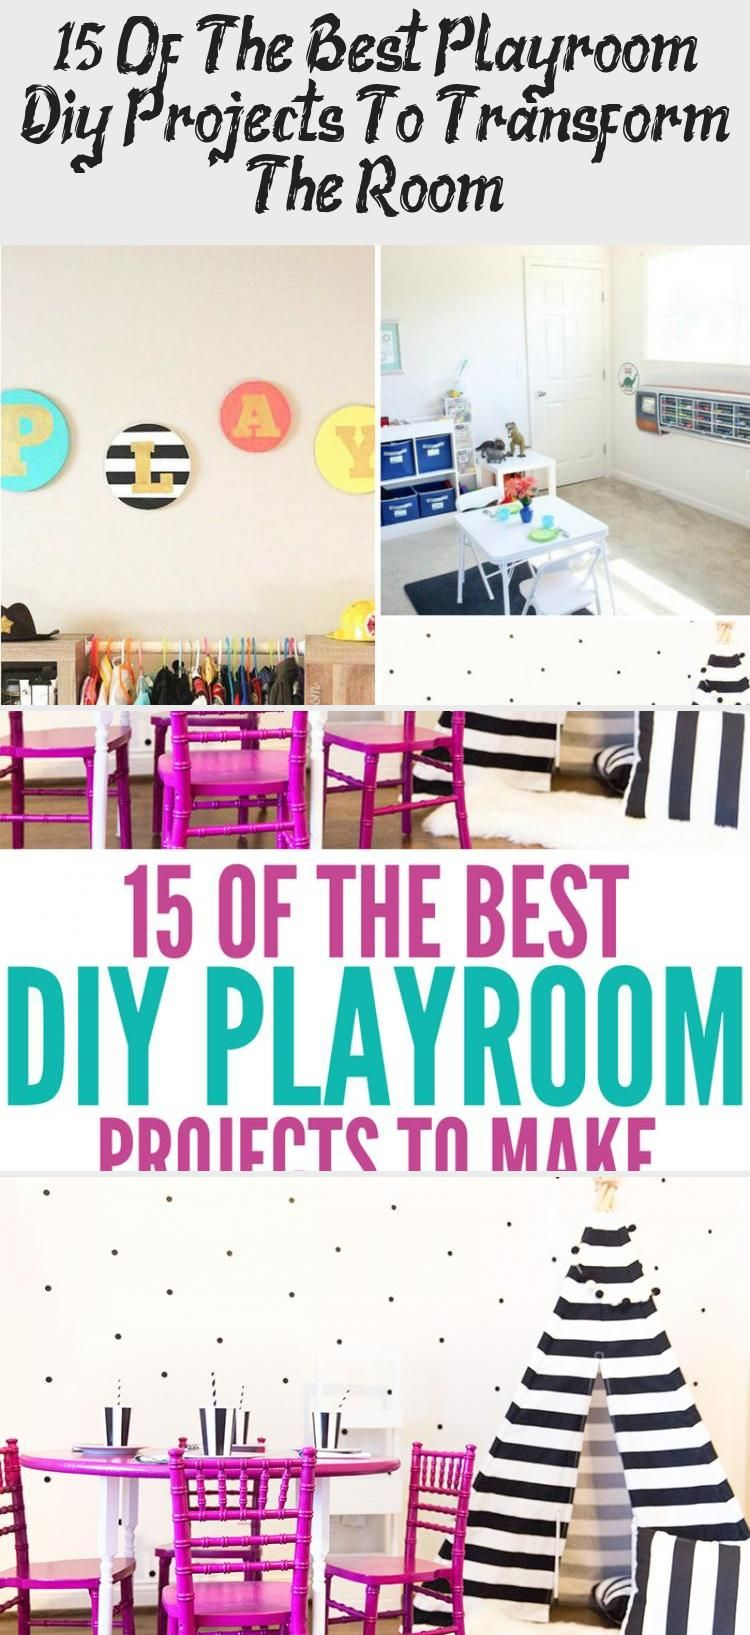 15 Of The Best Playroom Diy Projects To Transform The Room